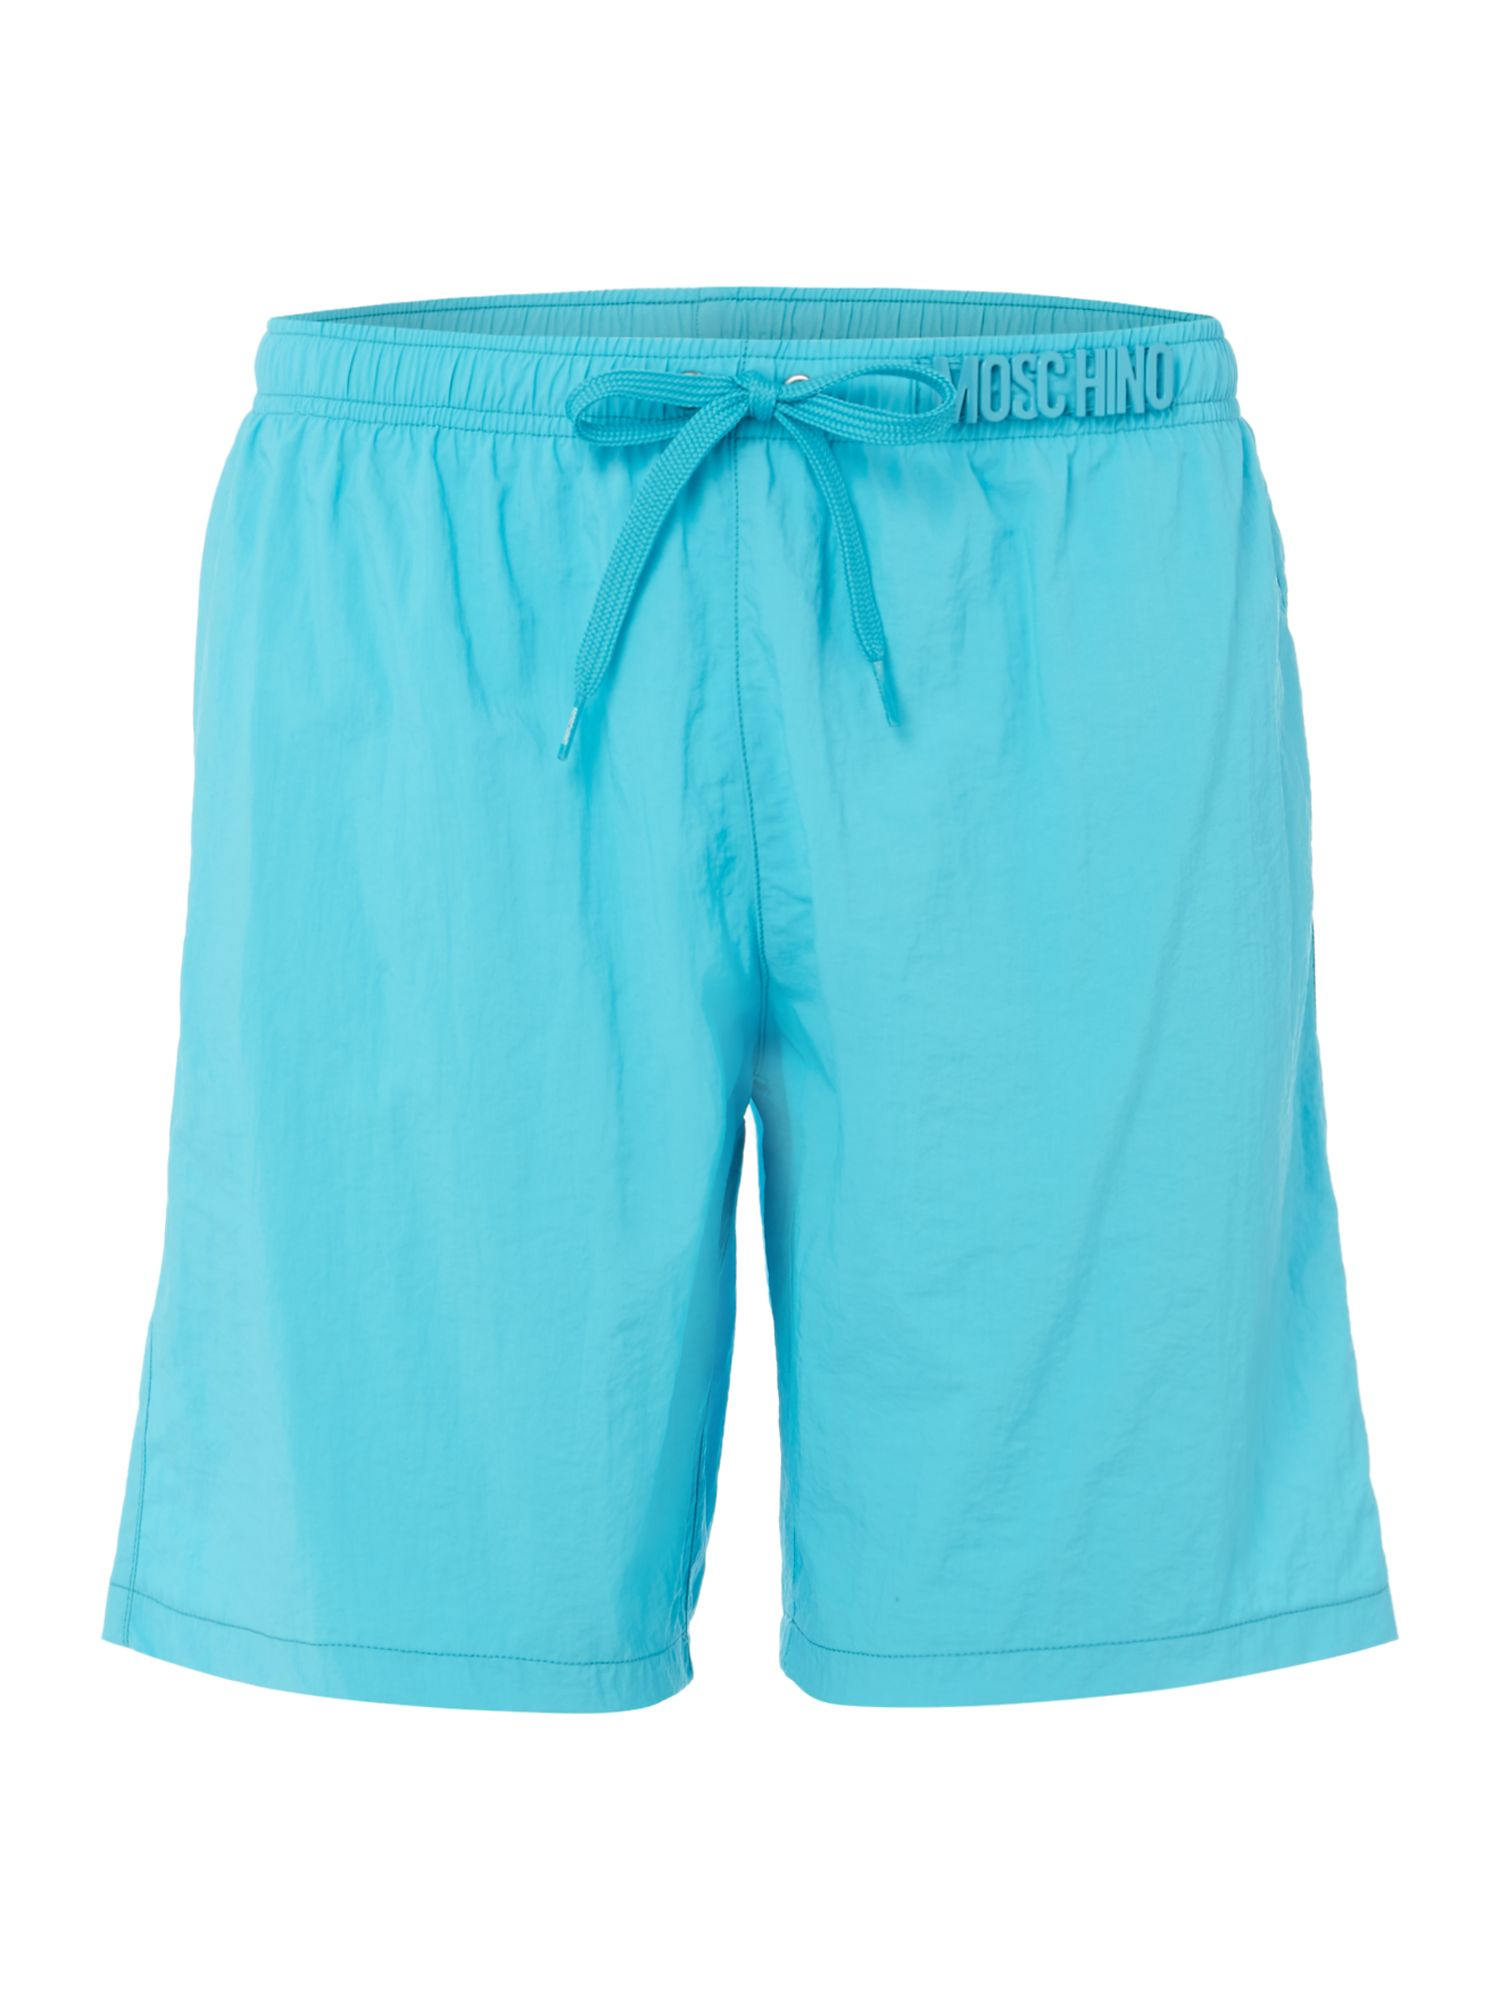 Men's Moschino Medium Plain Short, Turquoise